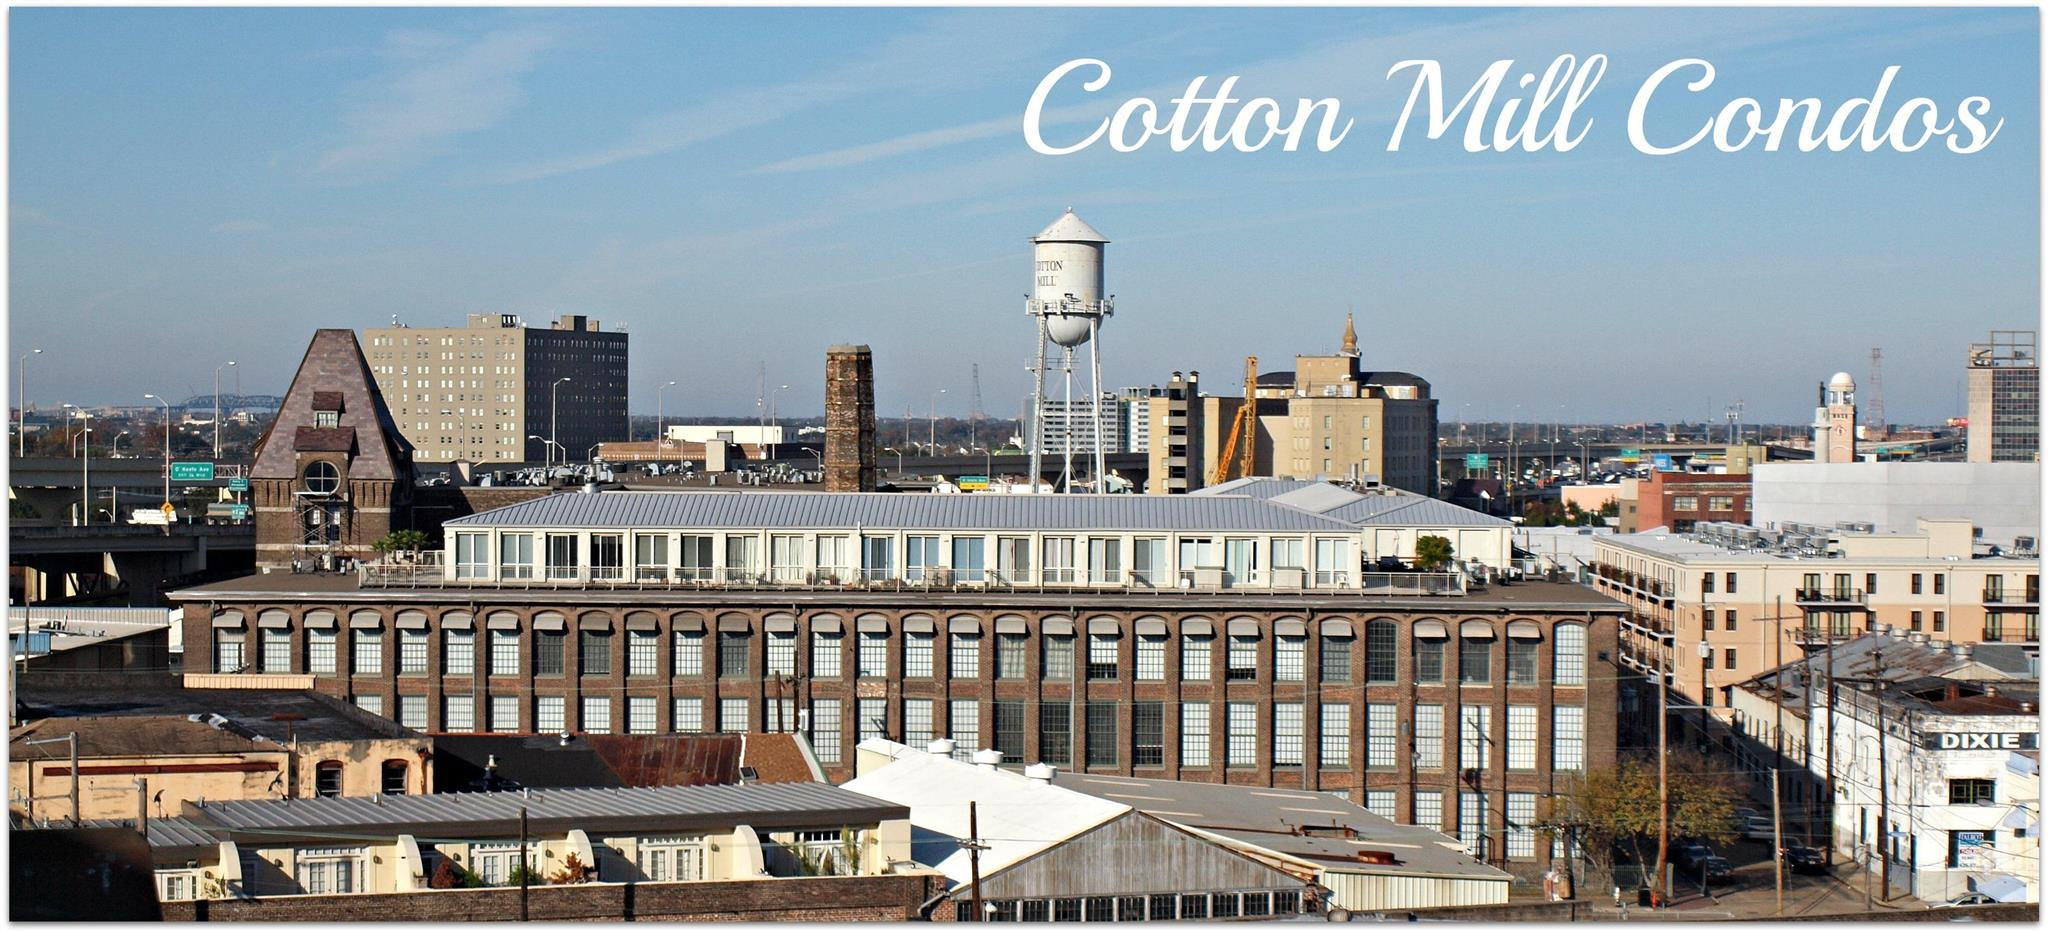 CottonMillCondosinNewOrleansWarehouseDistrict.jpg